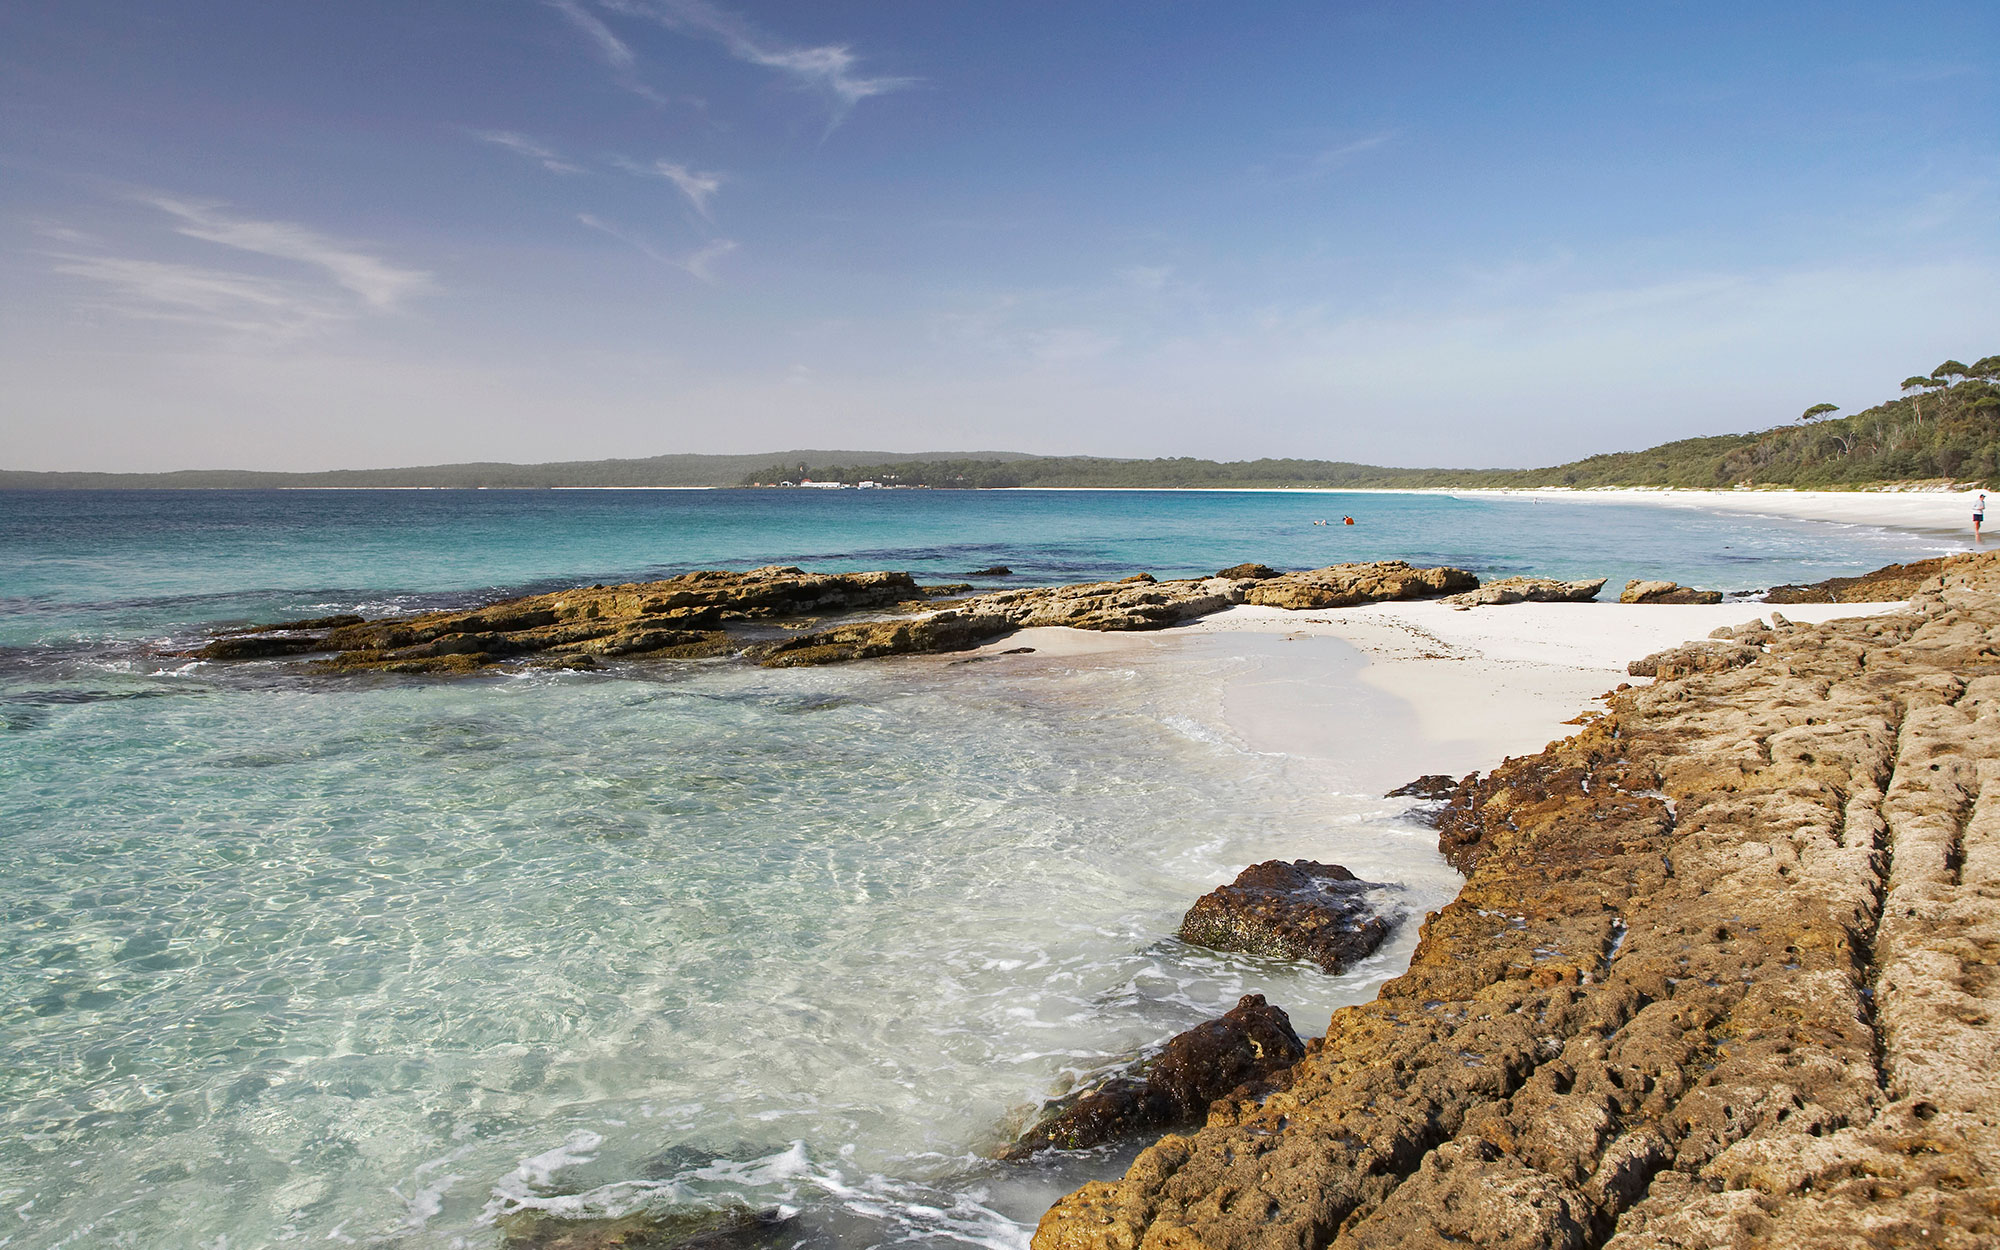 world's strangest beaches: Hyams Beach, Jervis Bay